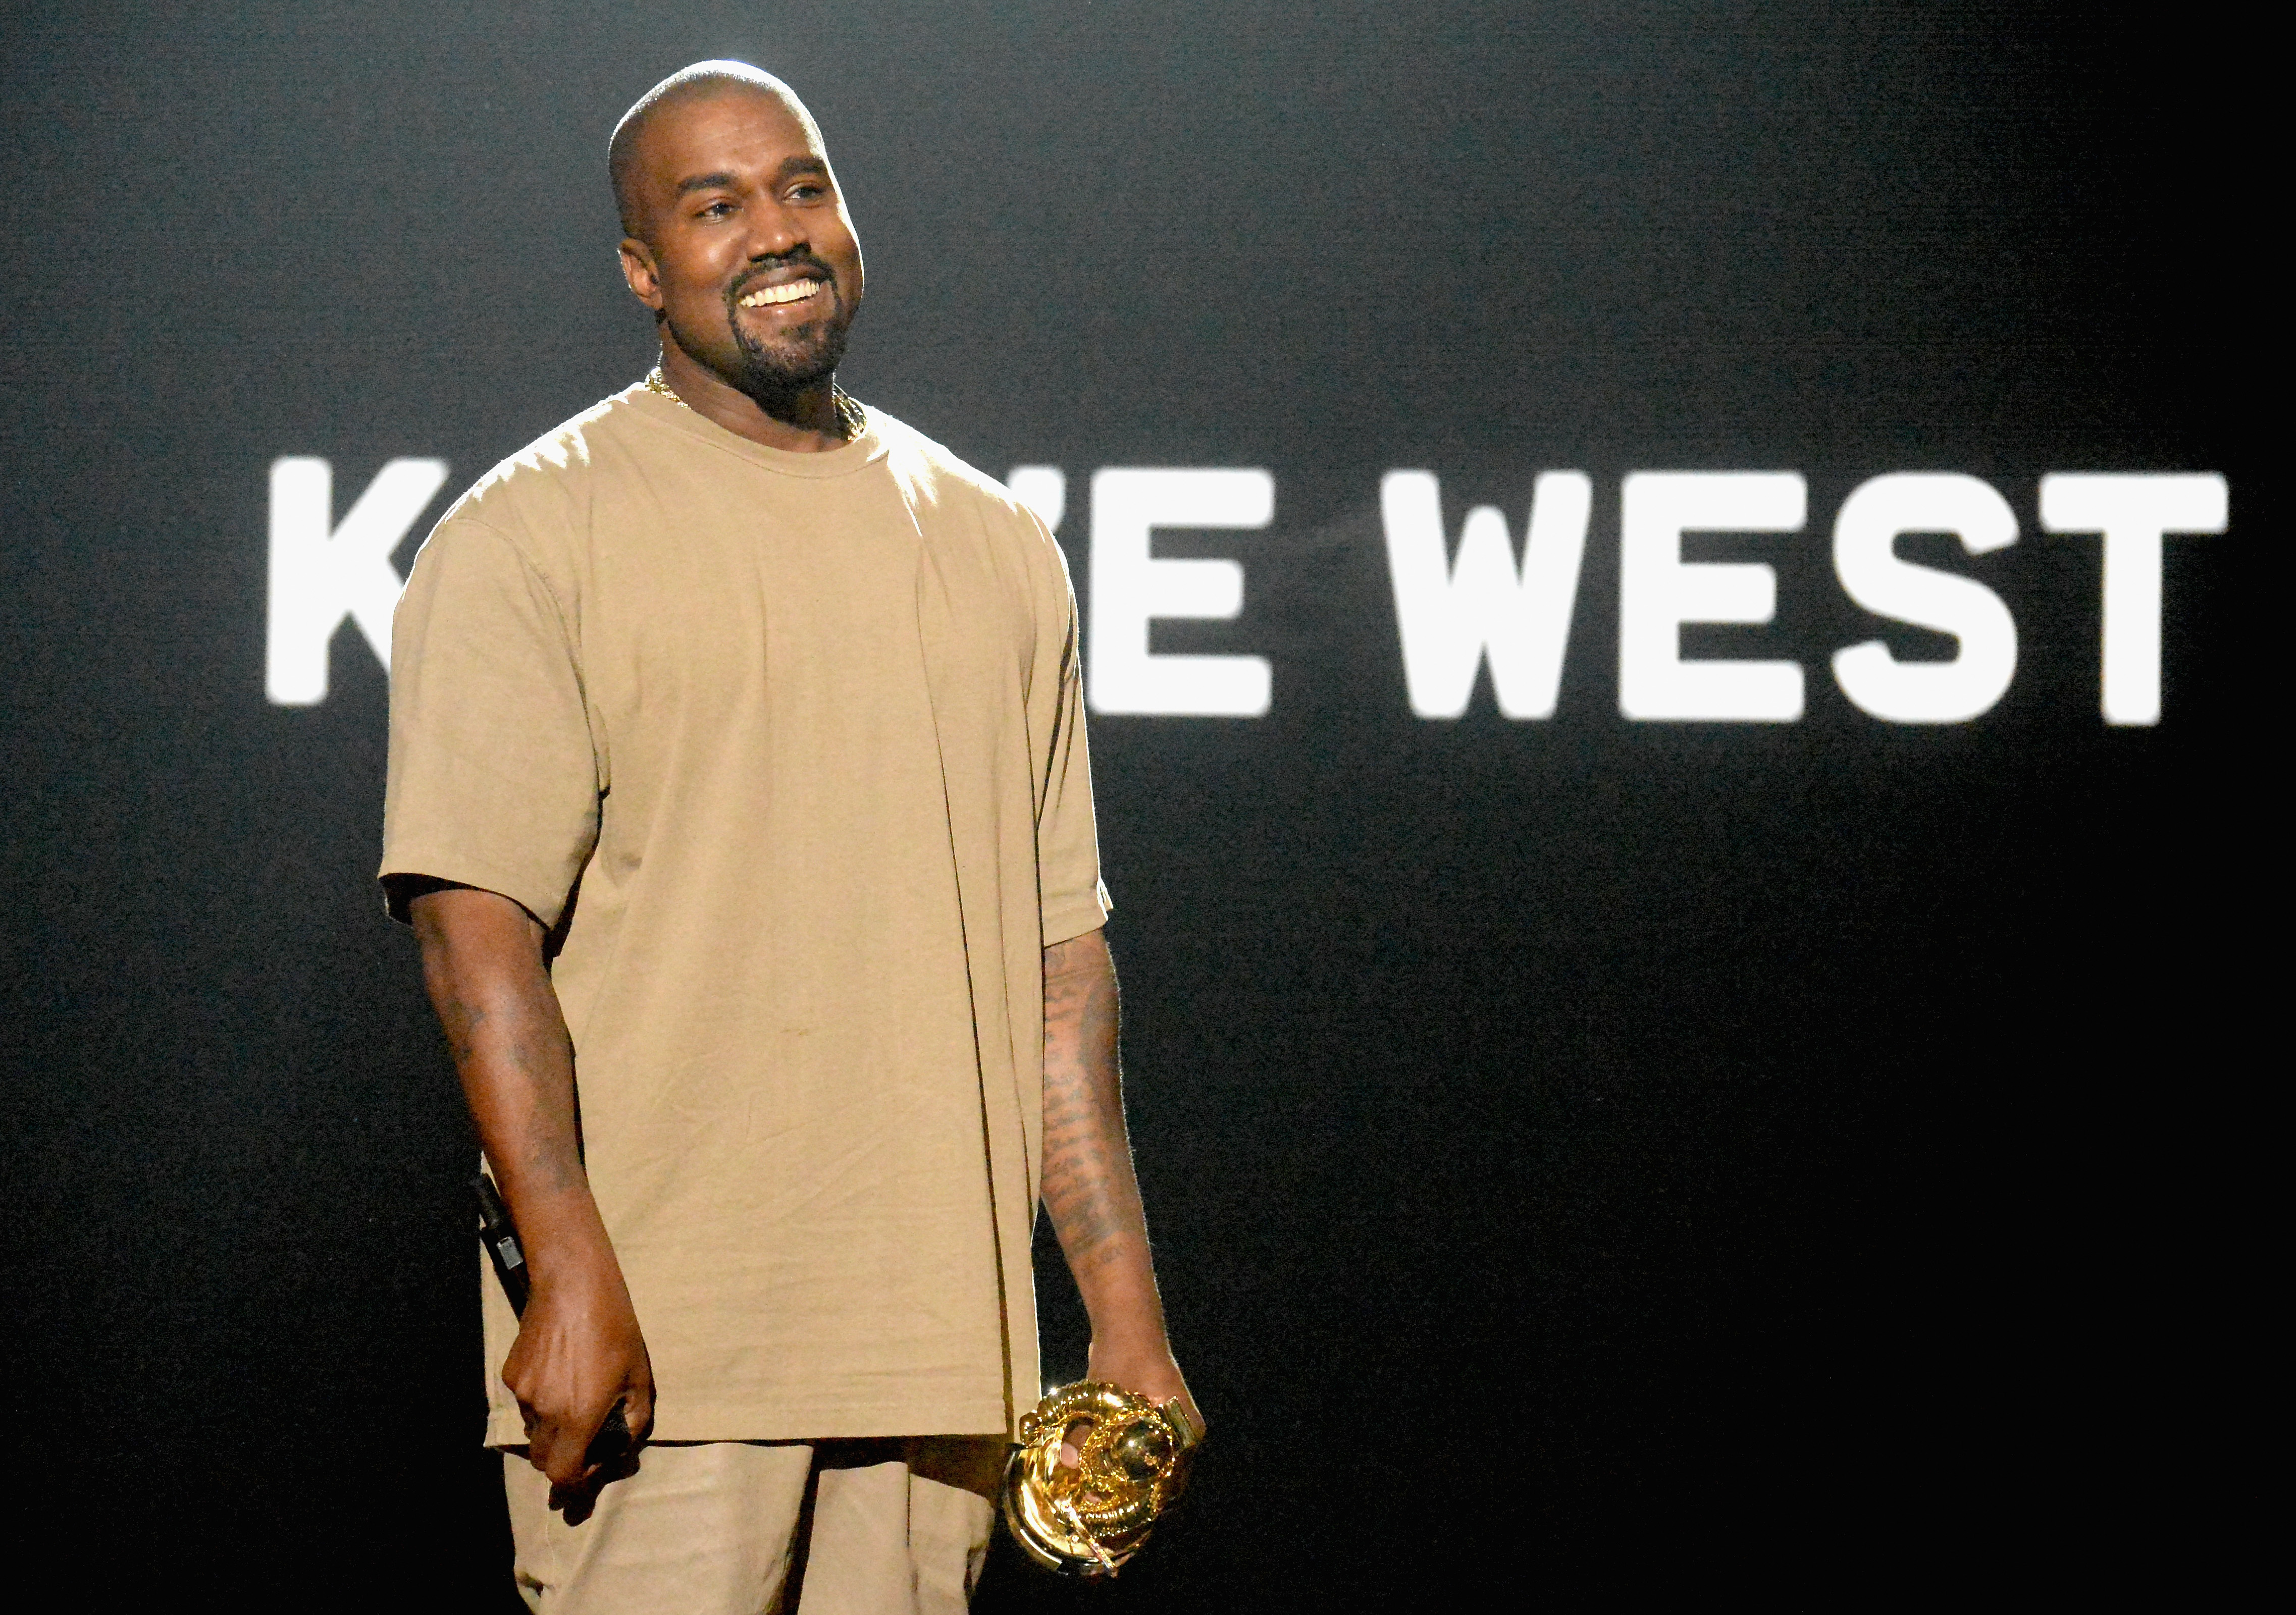 Kanye West accepts the Michael Jackson Video Vanguard Award onstage during the 2015 MTV Video Music Awards at Microsoft Theater on August 30, 2015 in Los Angeles, California.